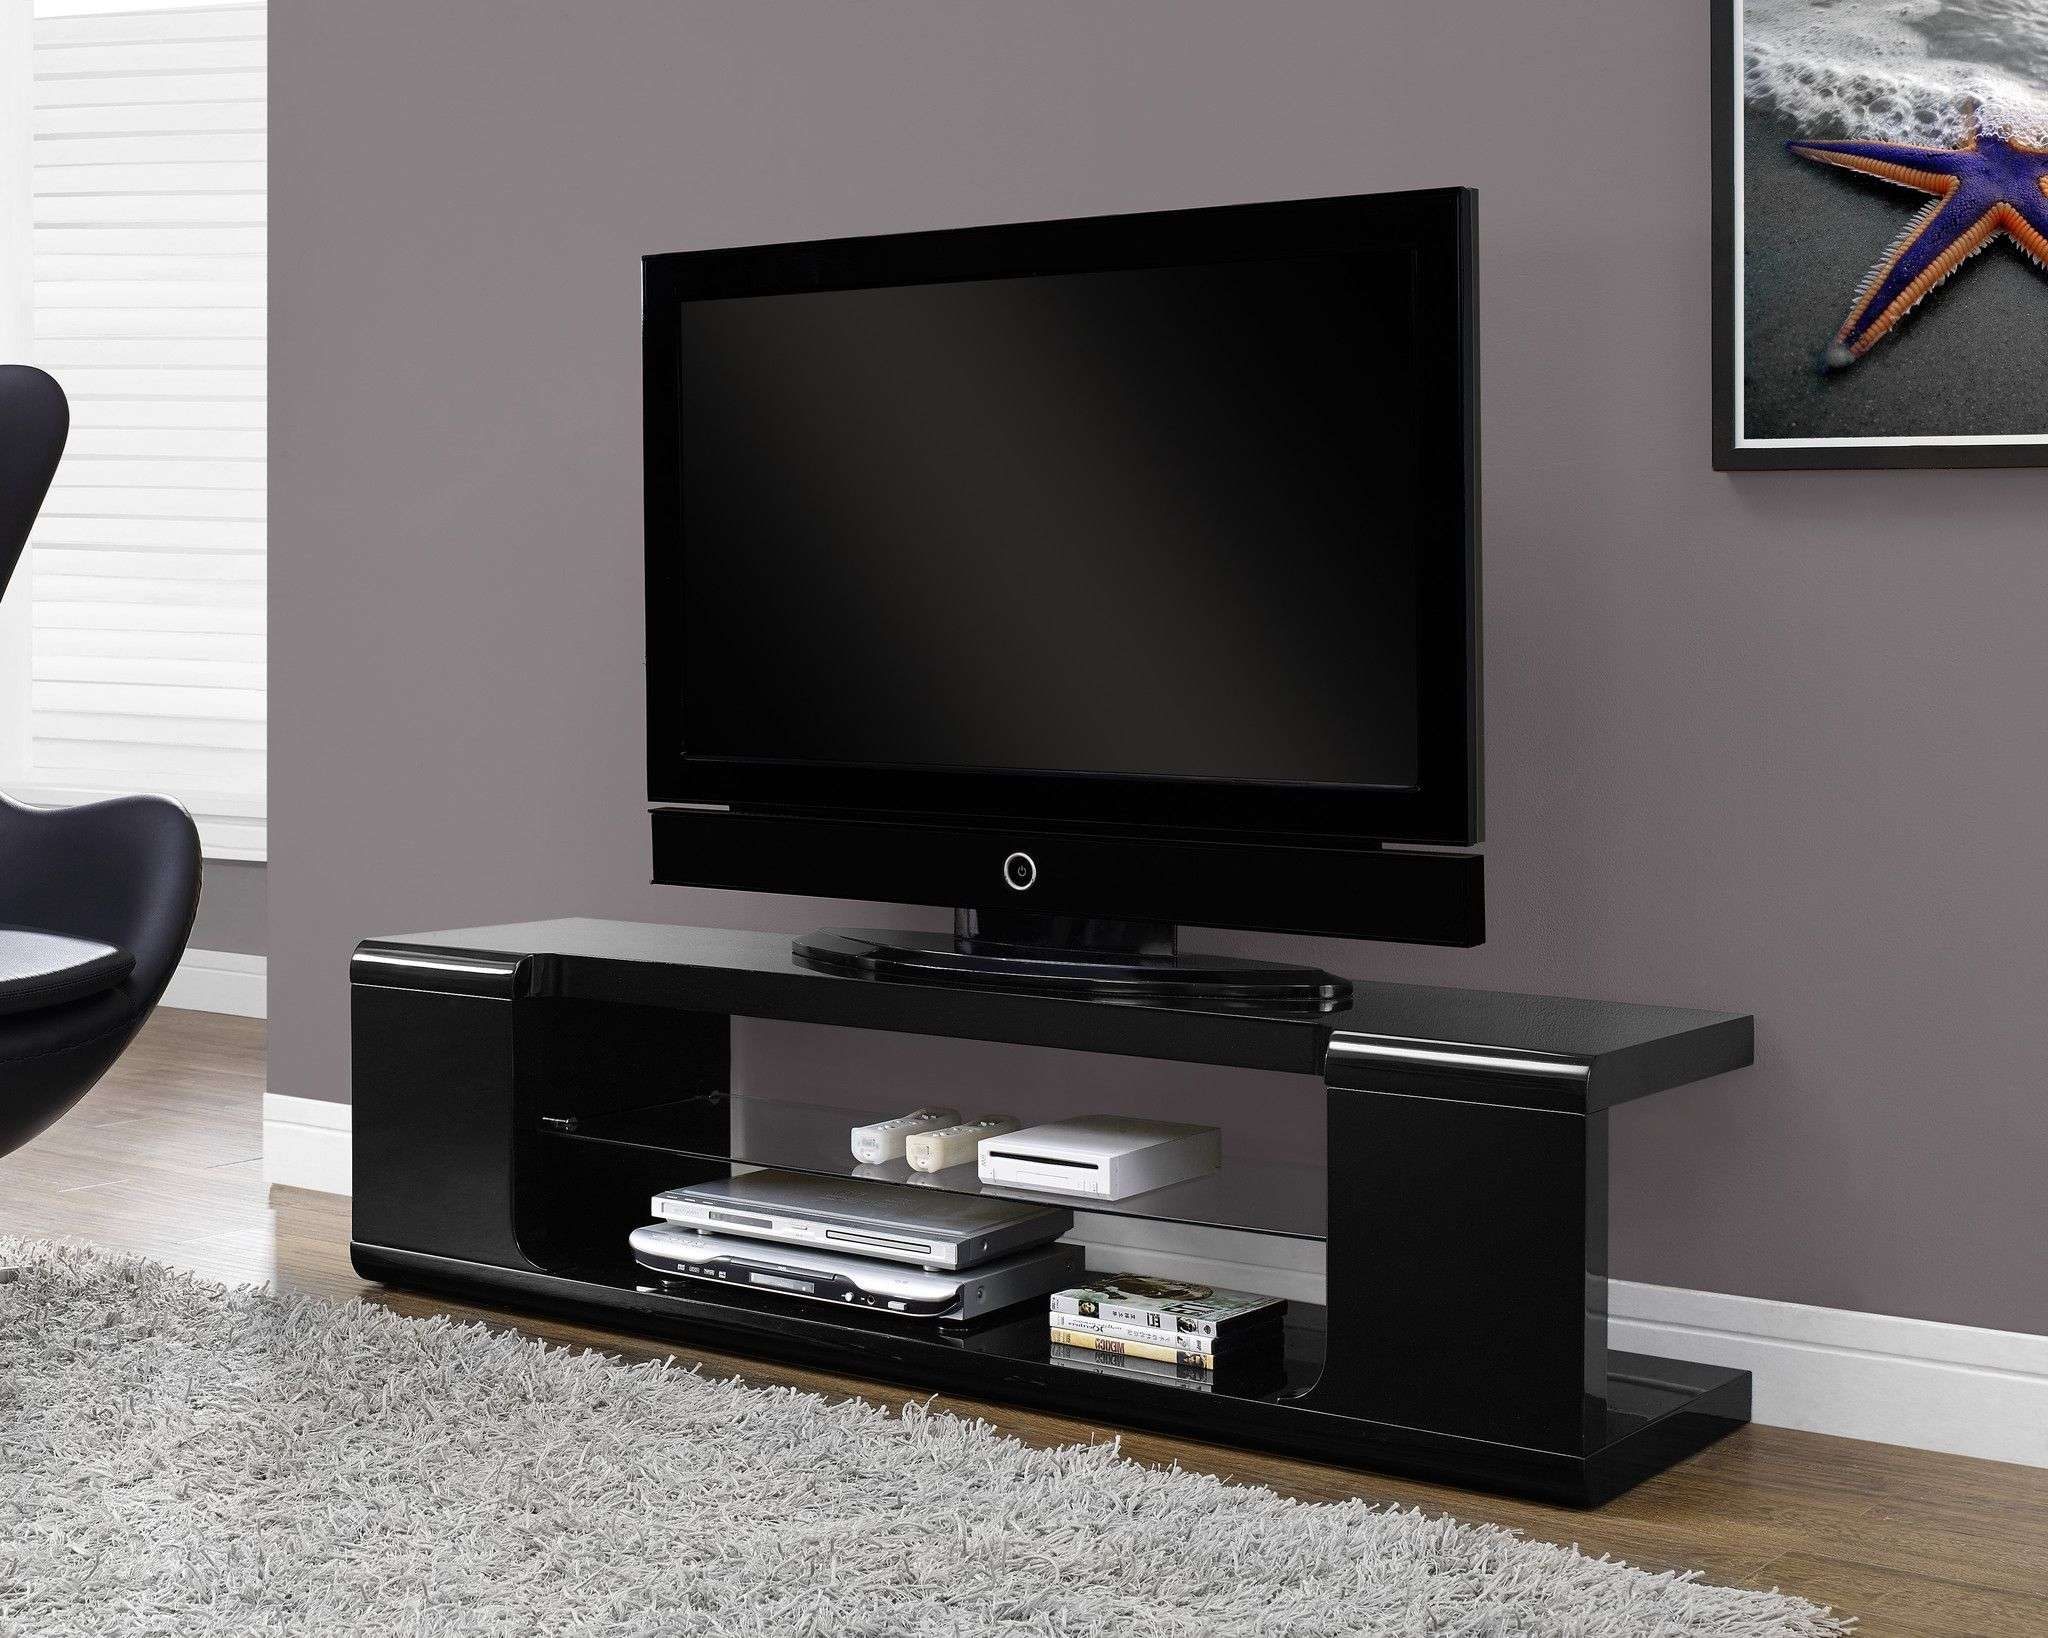 Tv Stand With Rounded Corners 36 With Tv Stand With Rounded Throughout Tv Stands With Rounded Corners (View 10 of 15)